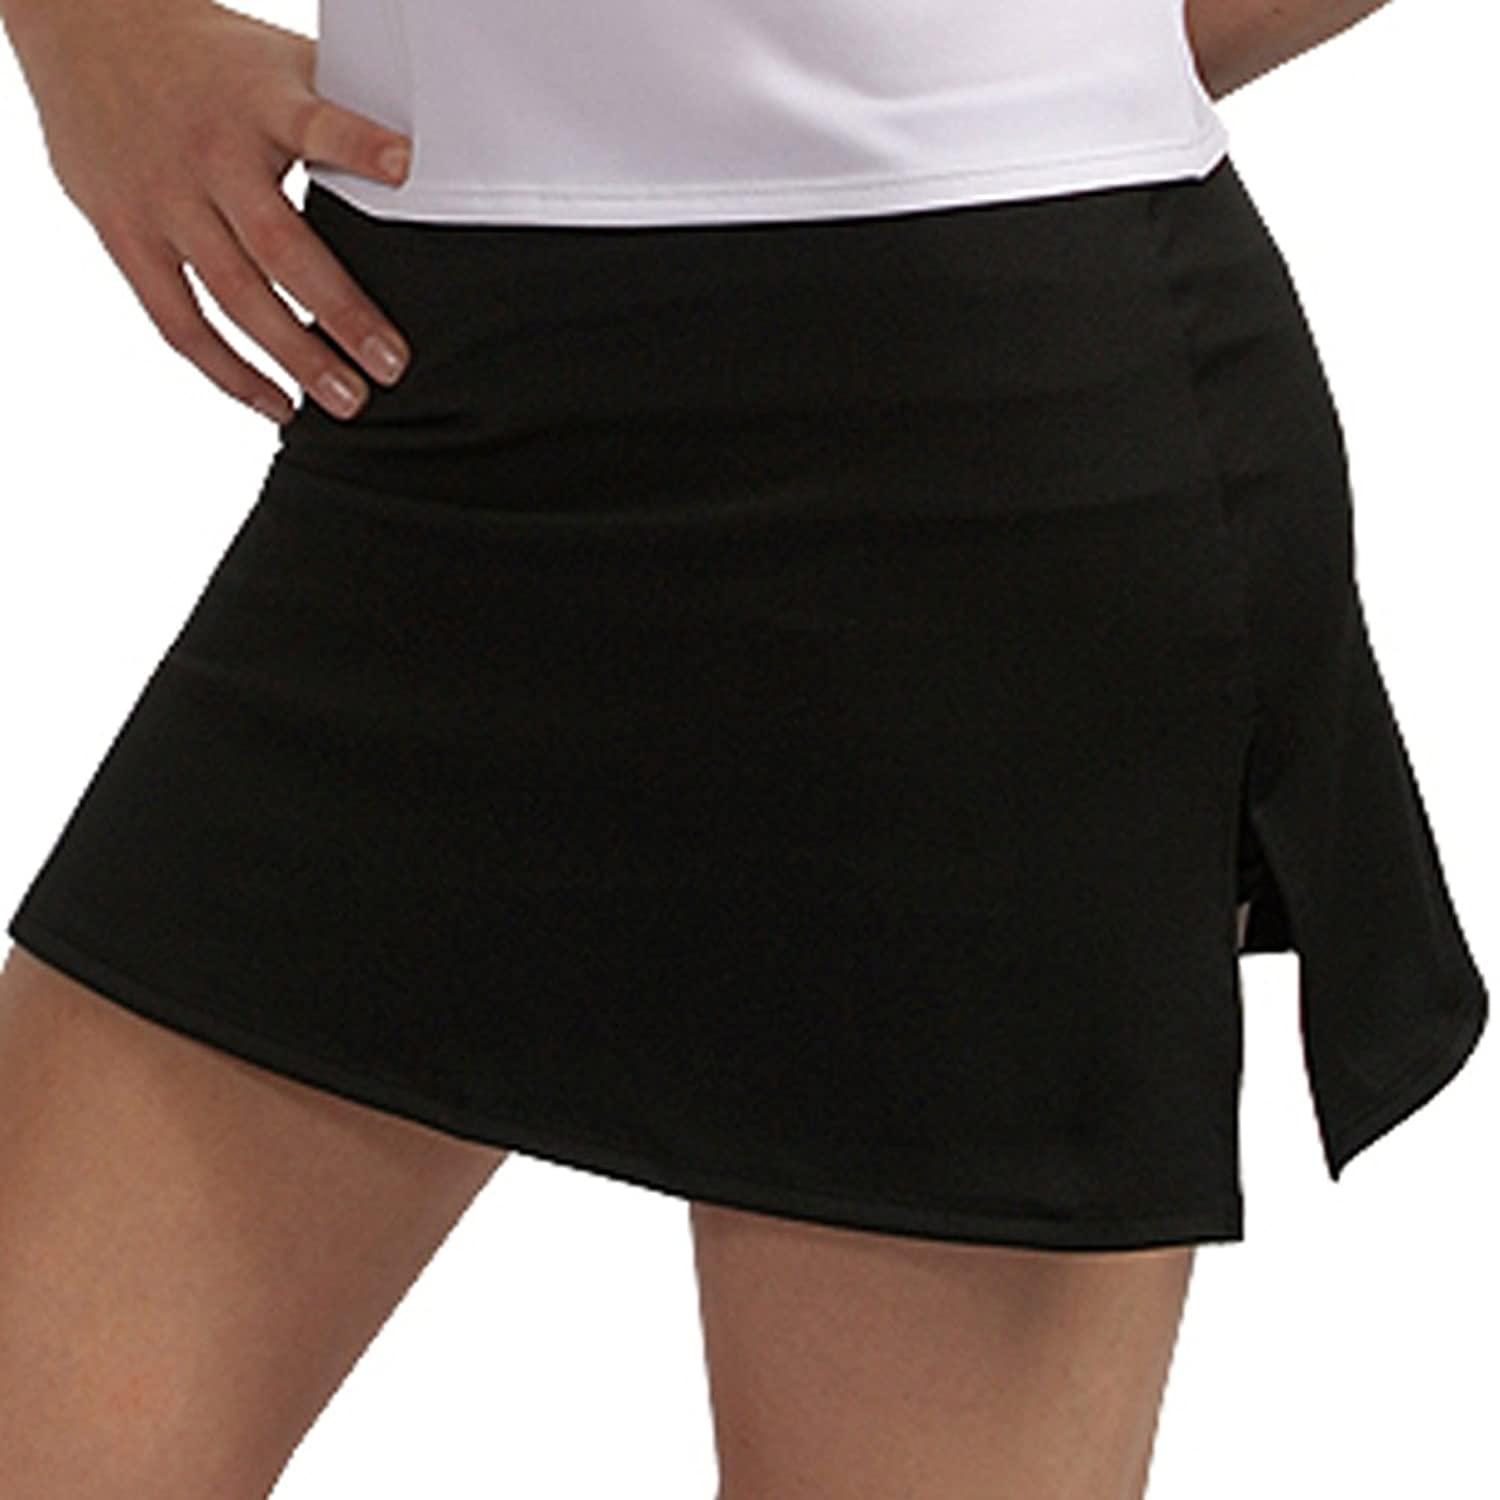 A-Line Tennis Skirt with Shorts and Slits